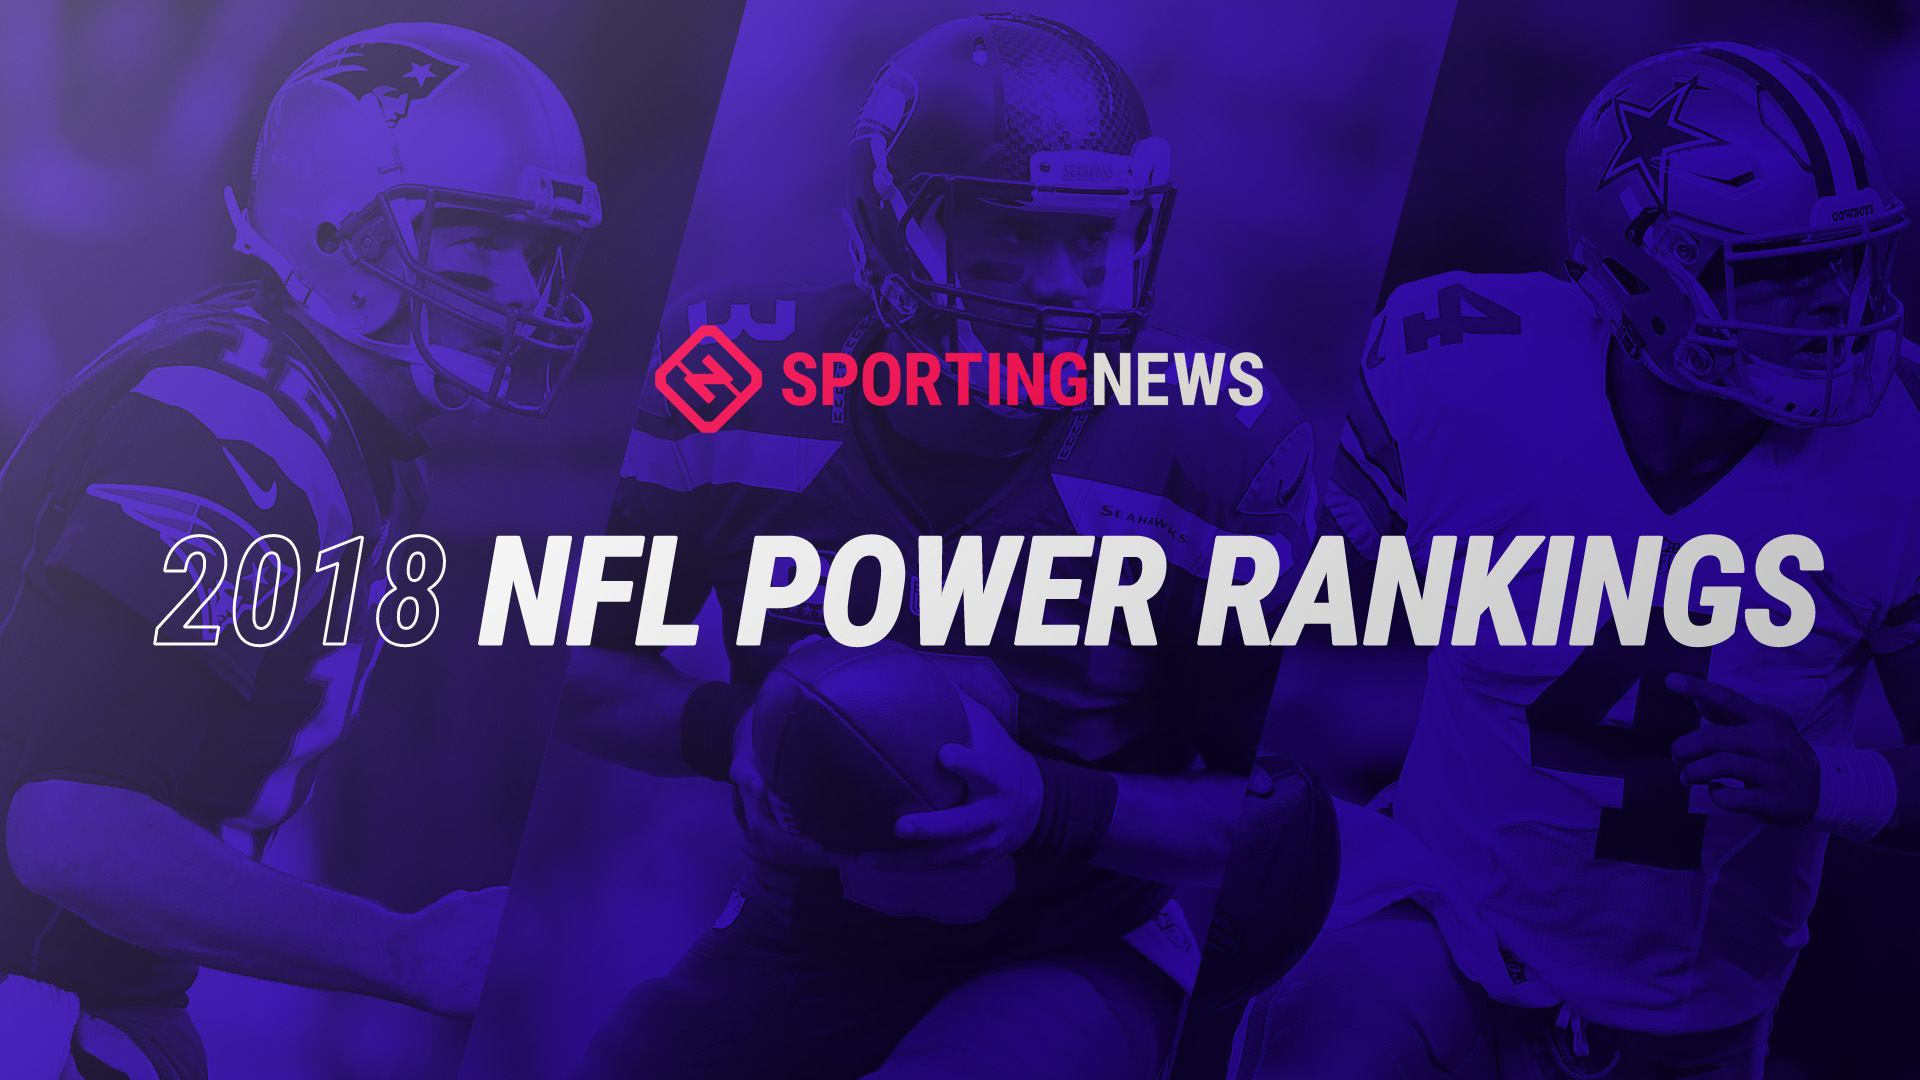 NFL-Powe-Rankings-FTR-2018